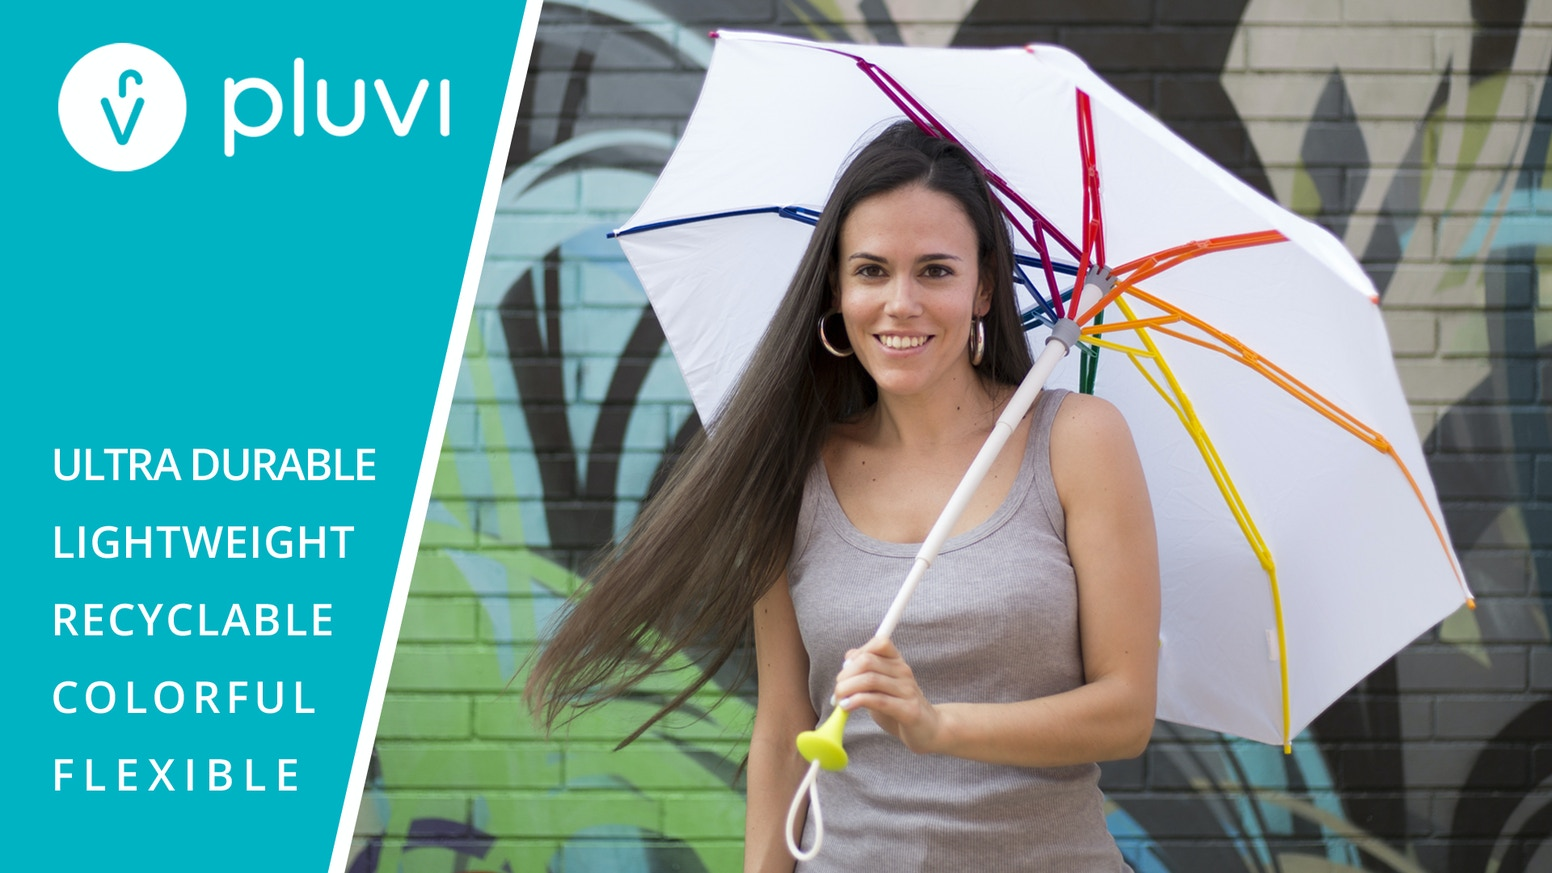 A Trendy Umbrella for Outstanding People. Ultra Durable, Lightweight and Flexible with Italian Design and Patented Sustainable Innovation.